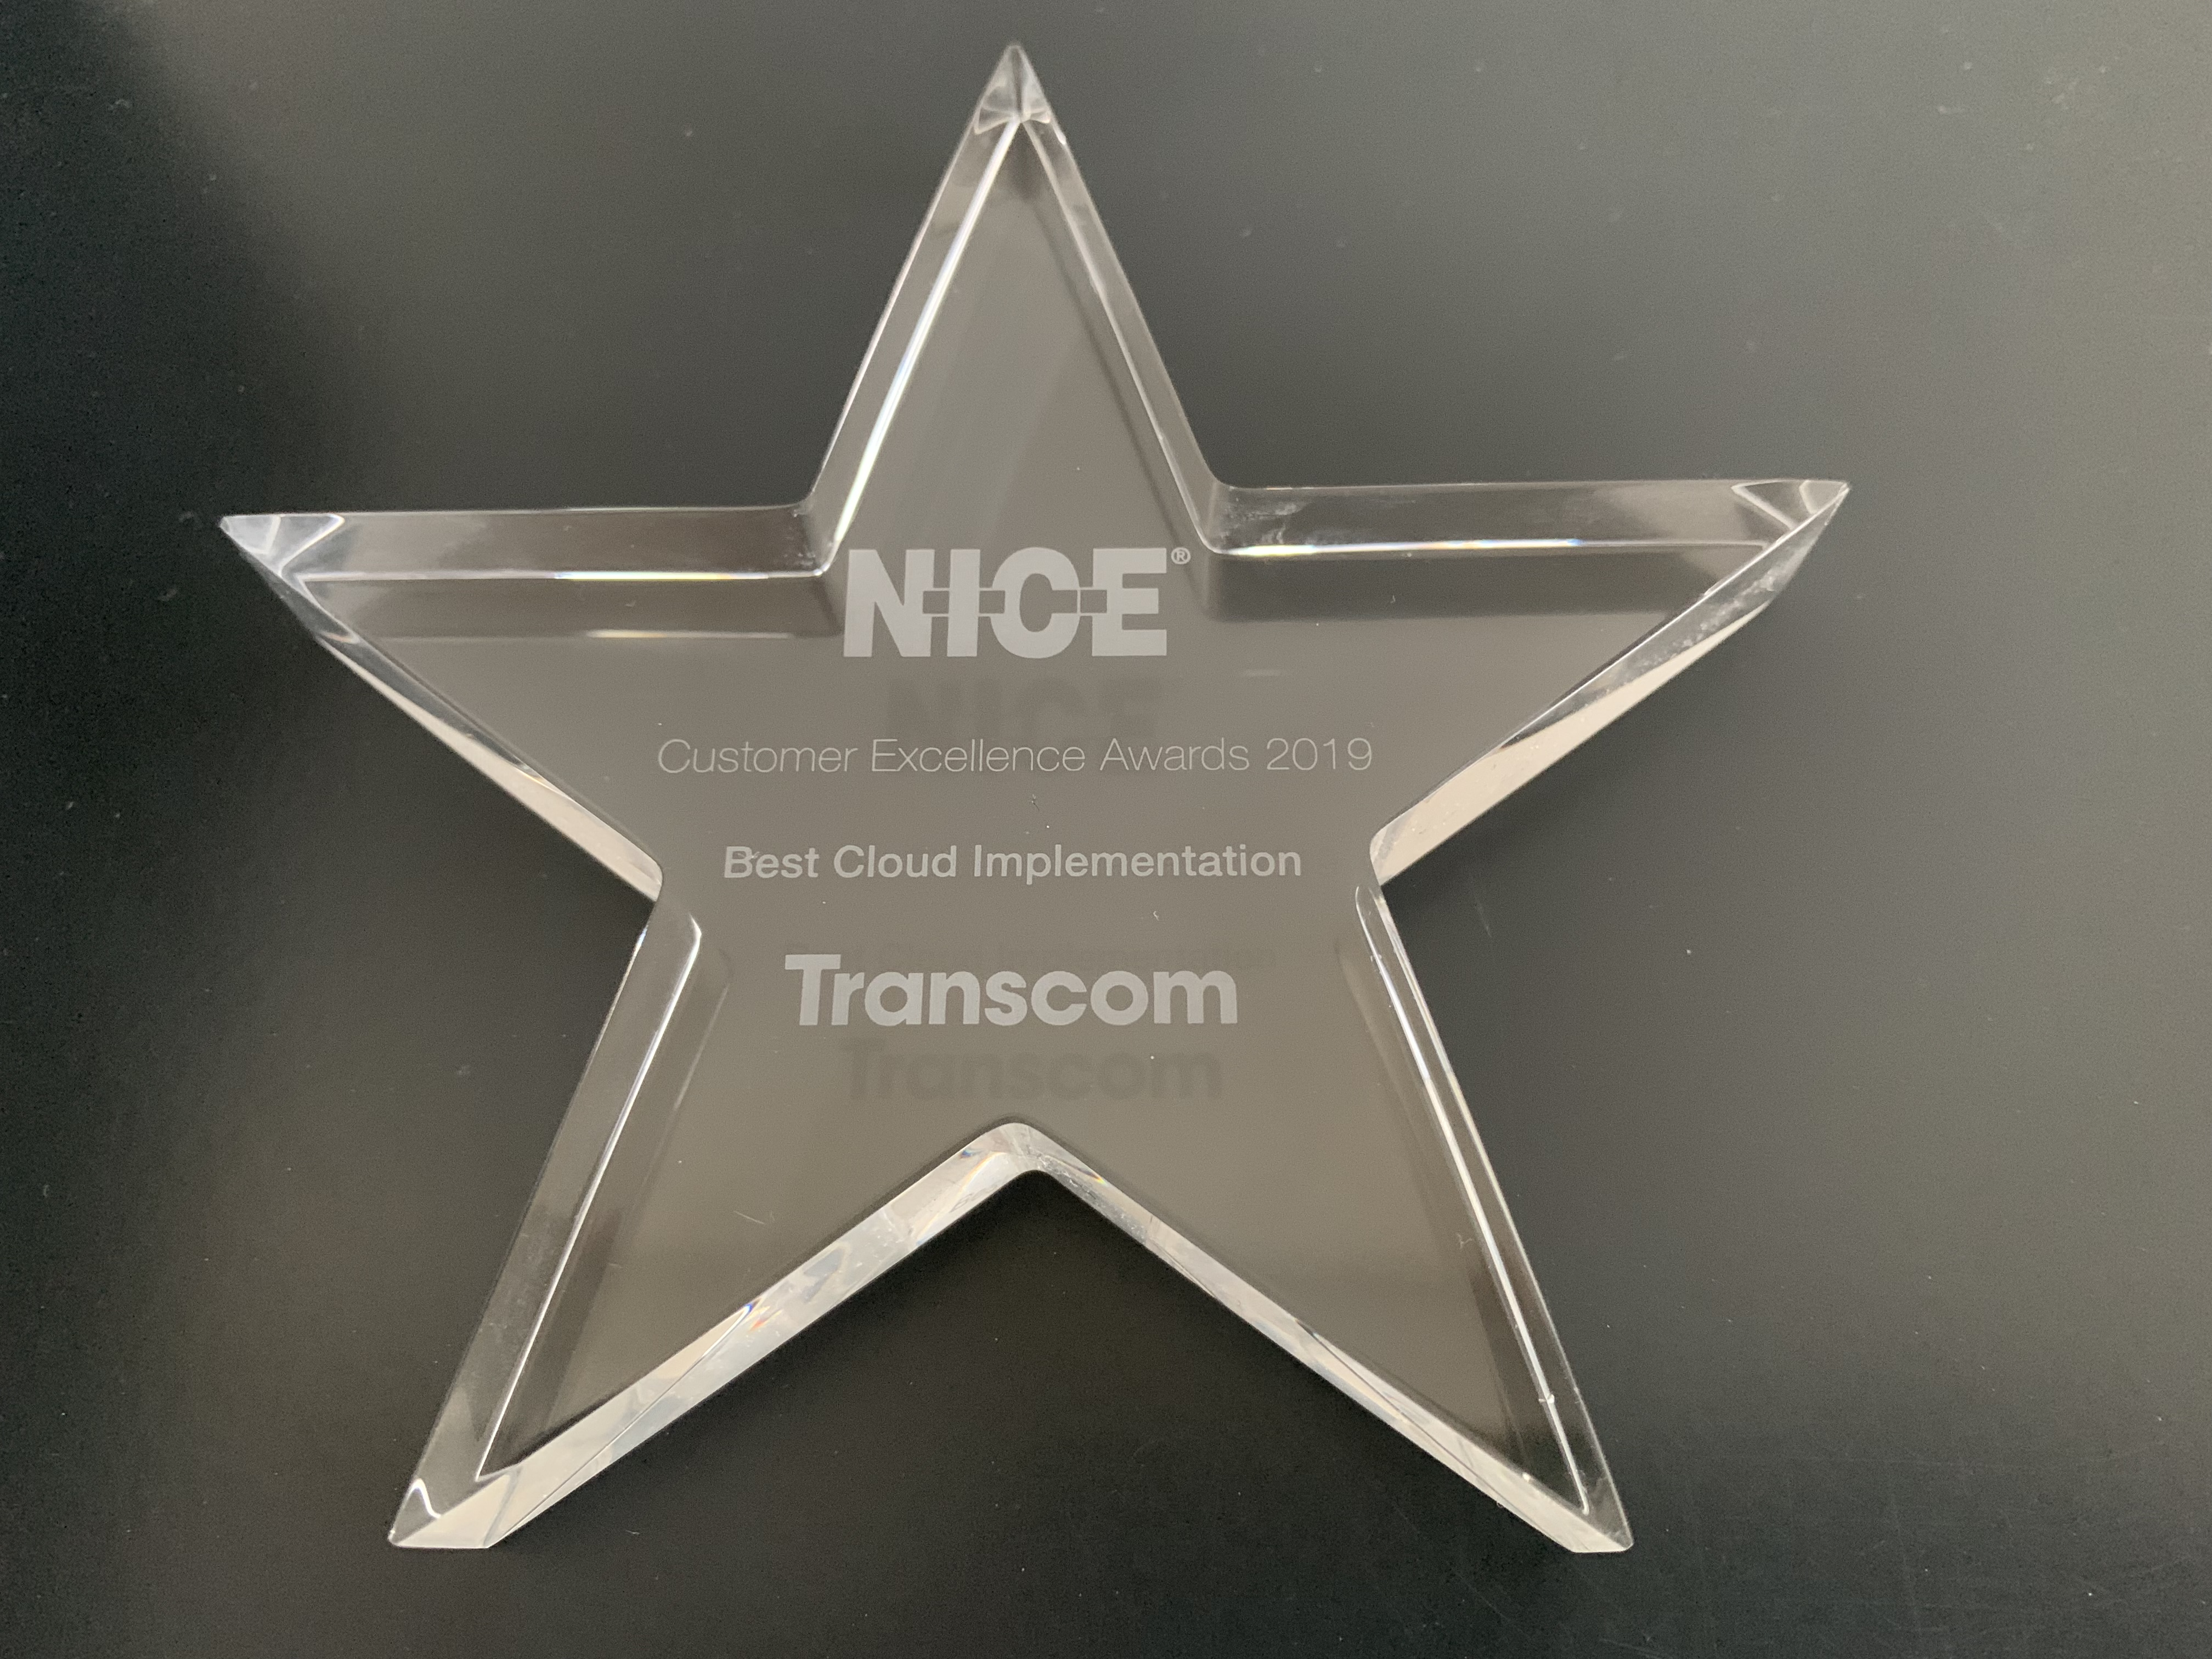 NICE Best Cloud Implementation Award